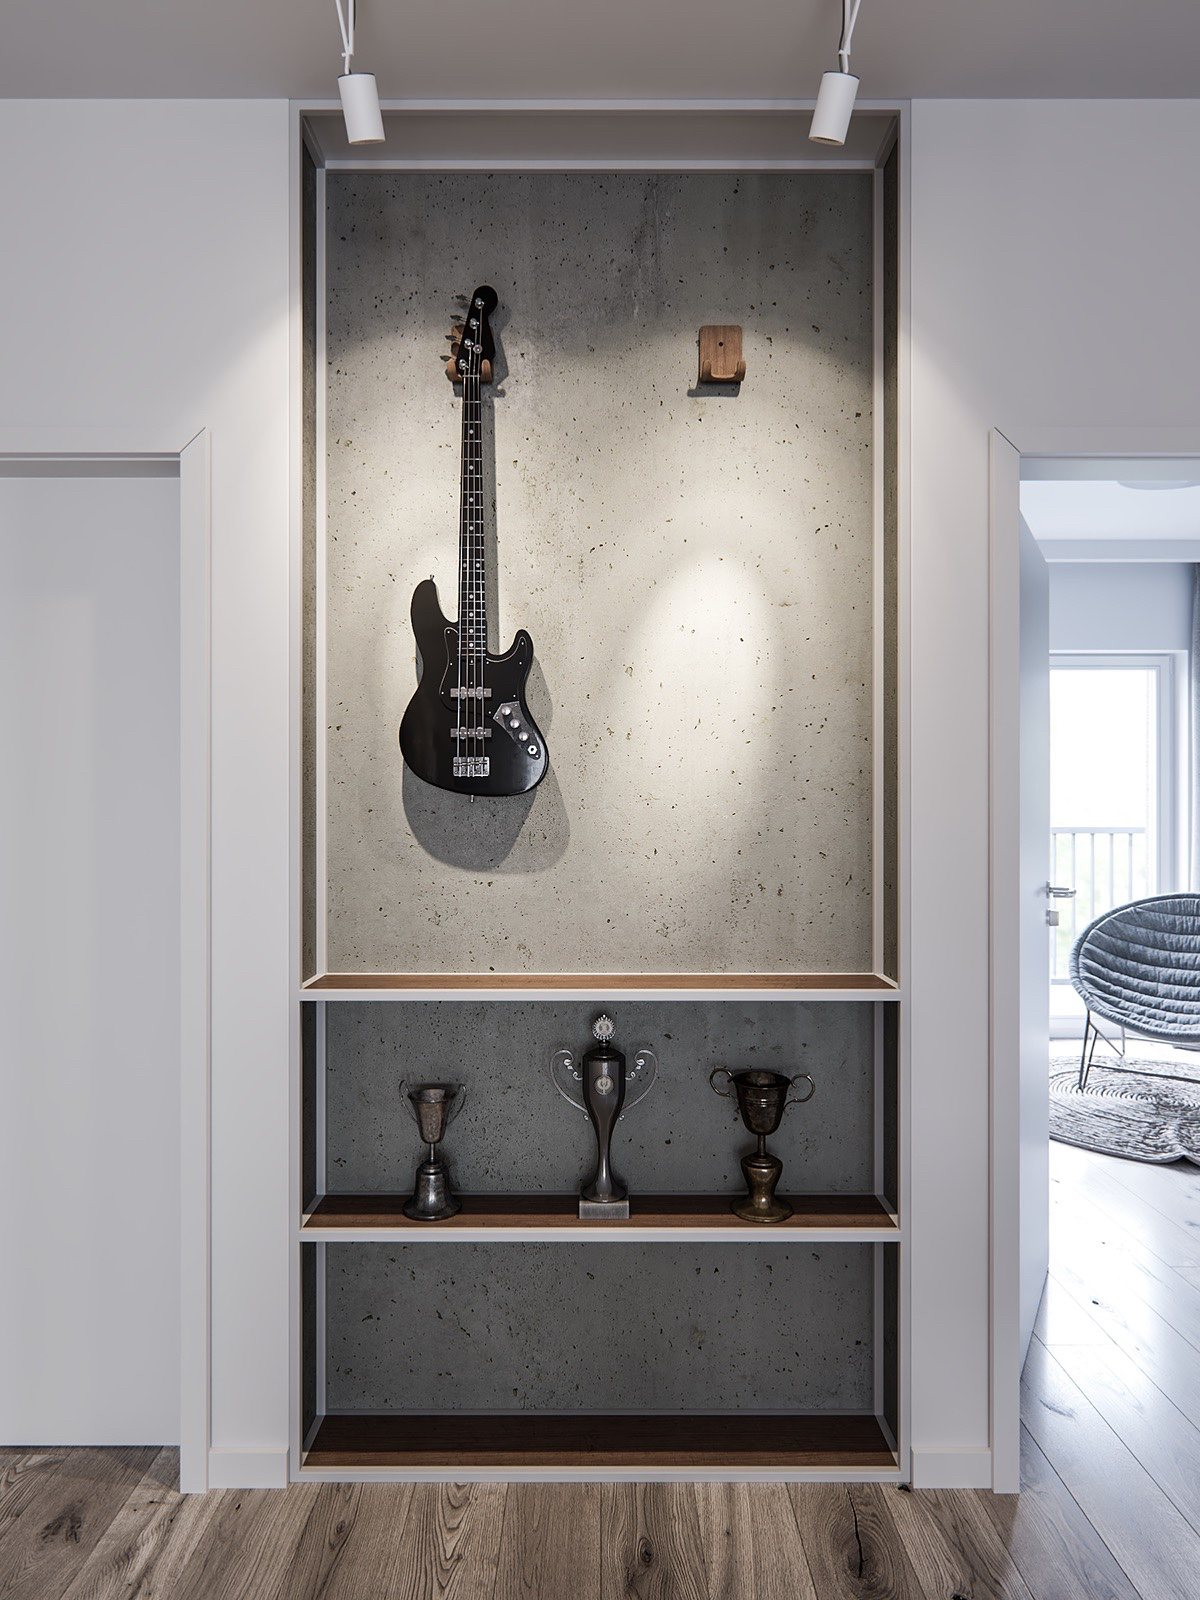 Home Guitar Display With Industrial Influences - A pair of stylish apartments that put their extra rooms to good use